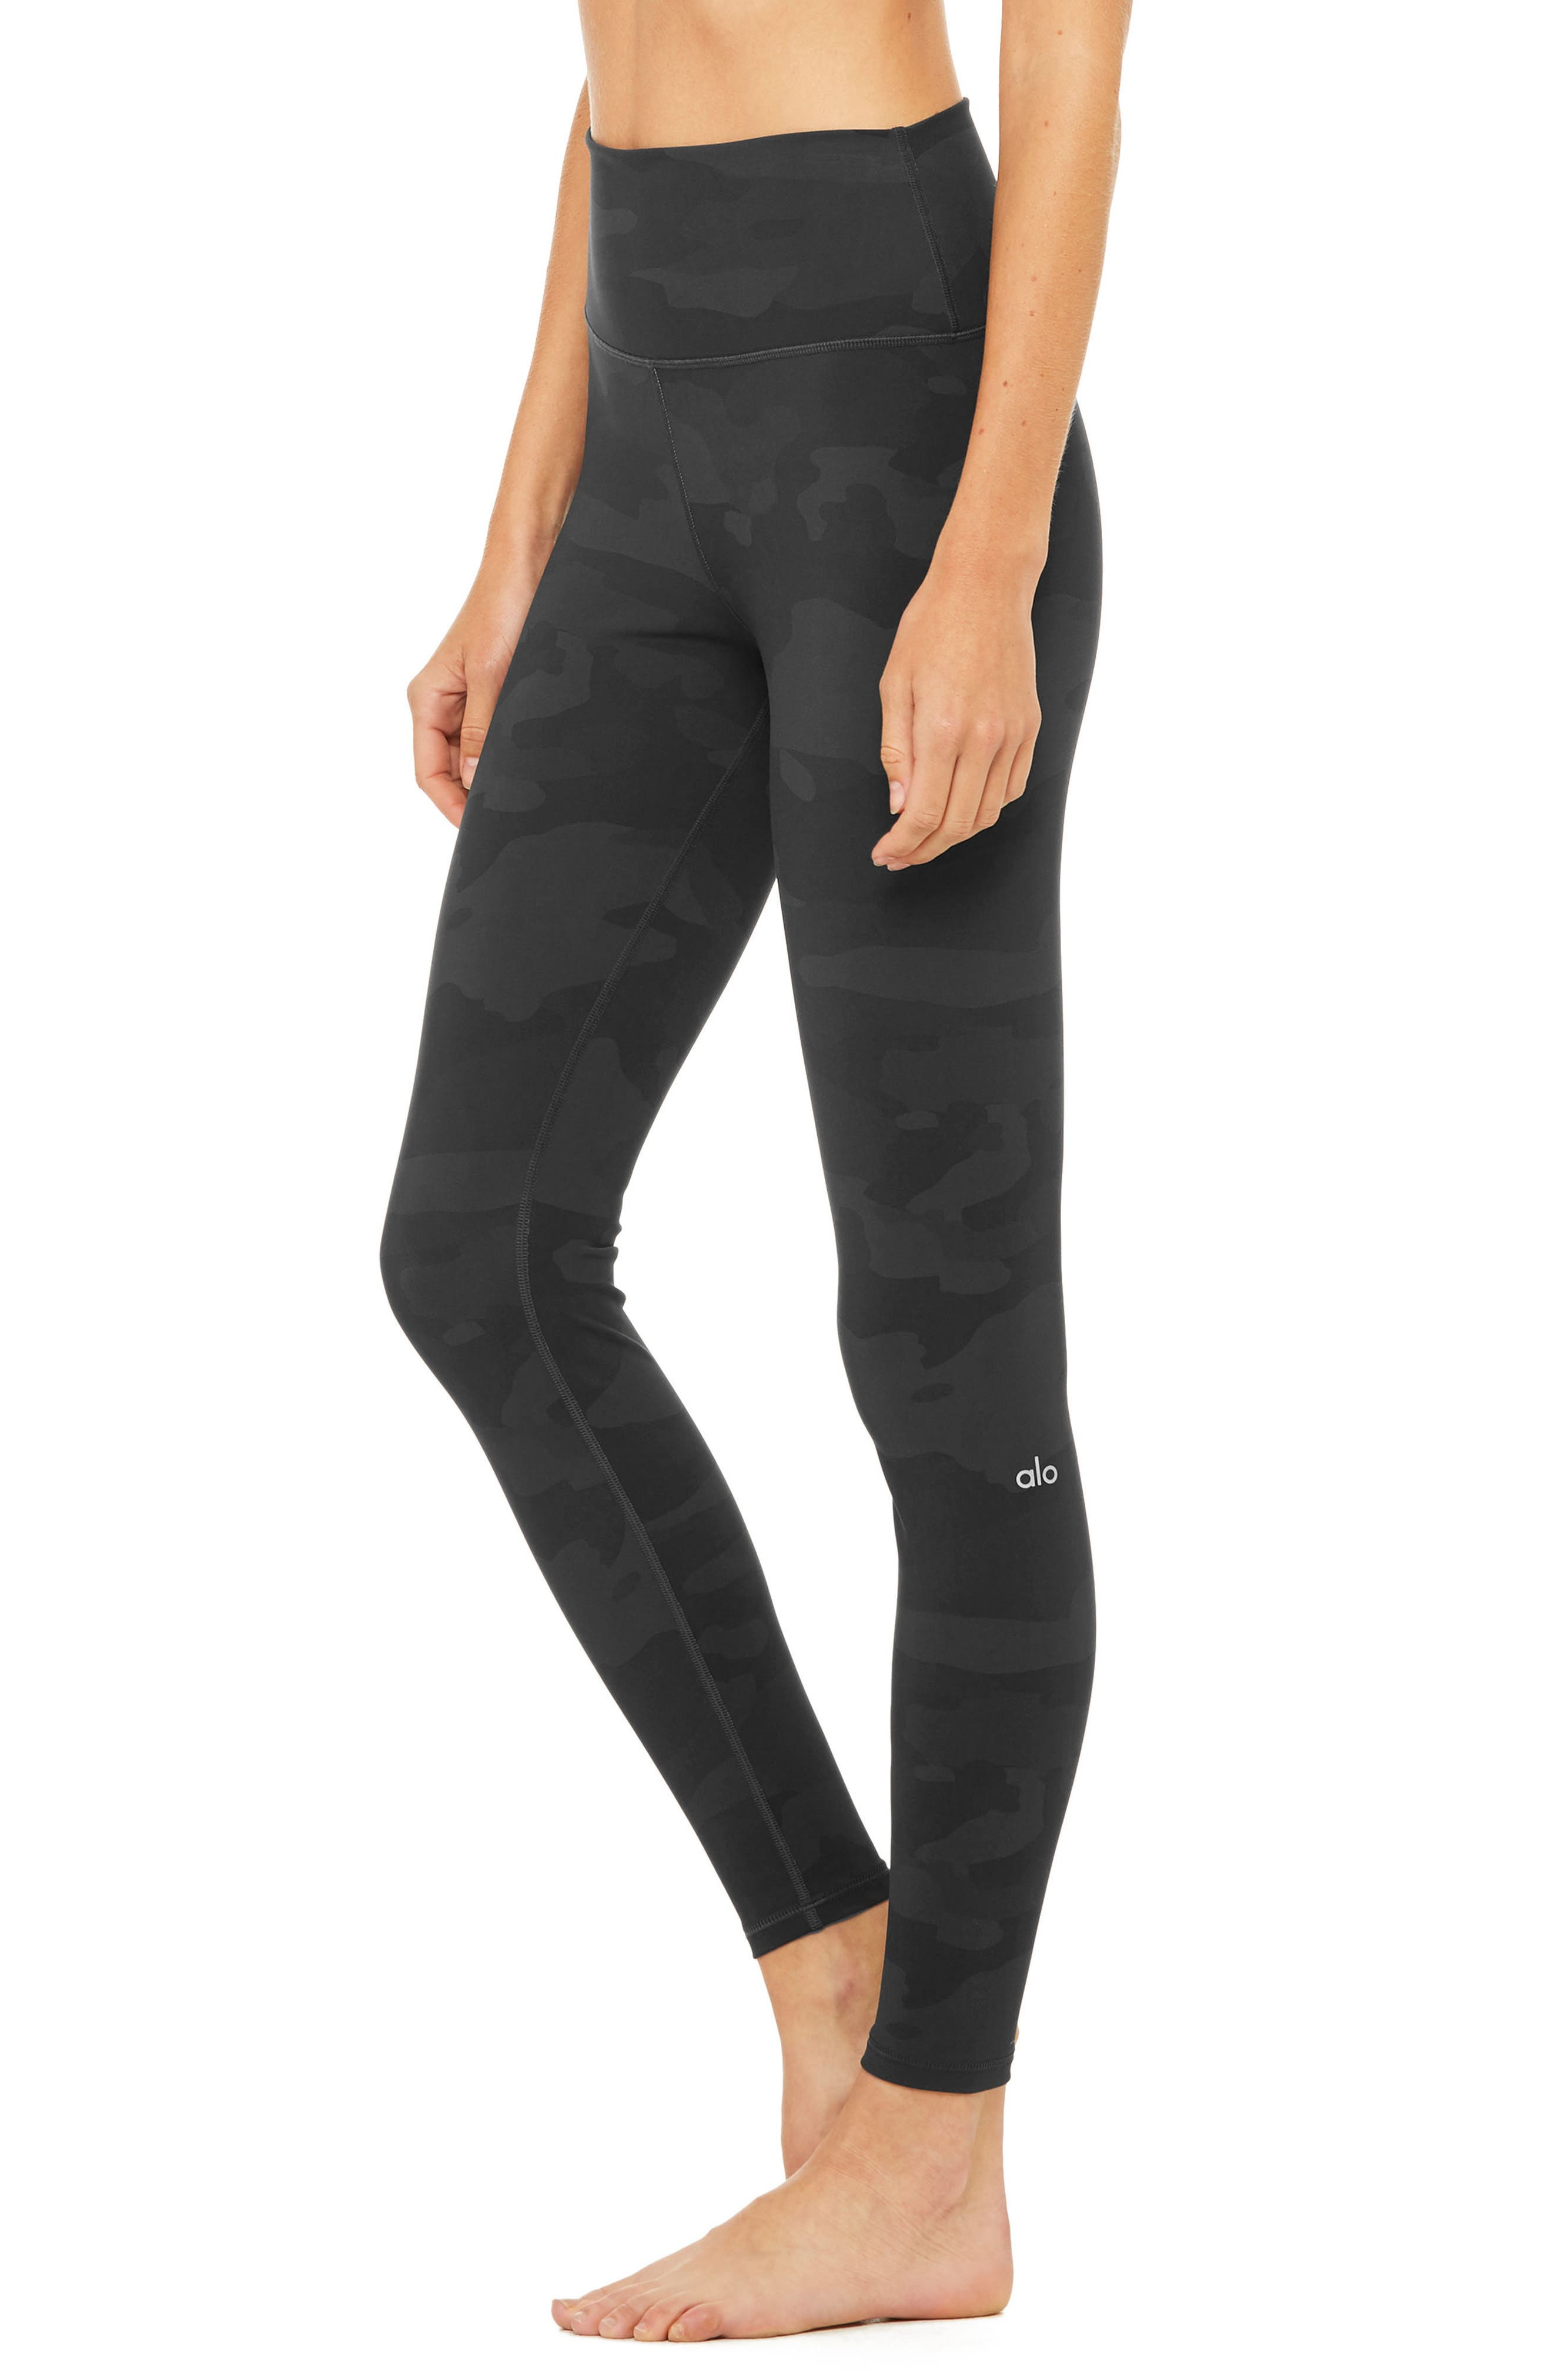 ALO, Vapor High Waist Leggings, Alternate thumbnail 3, color, 011